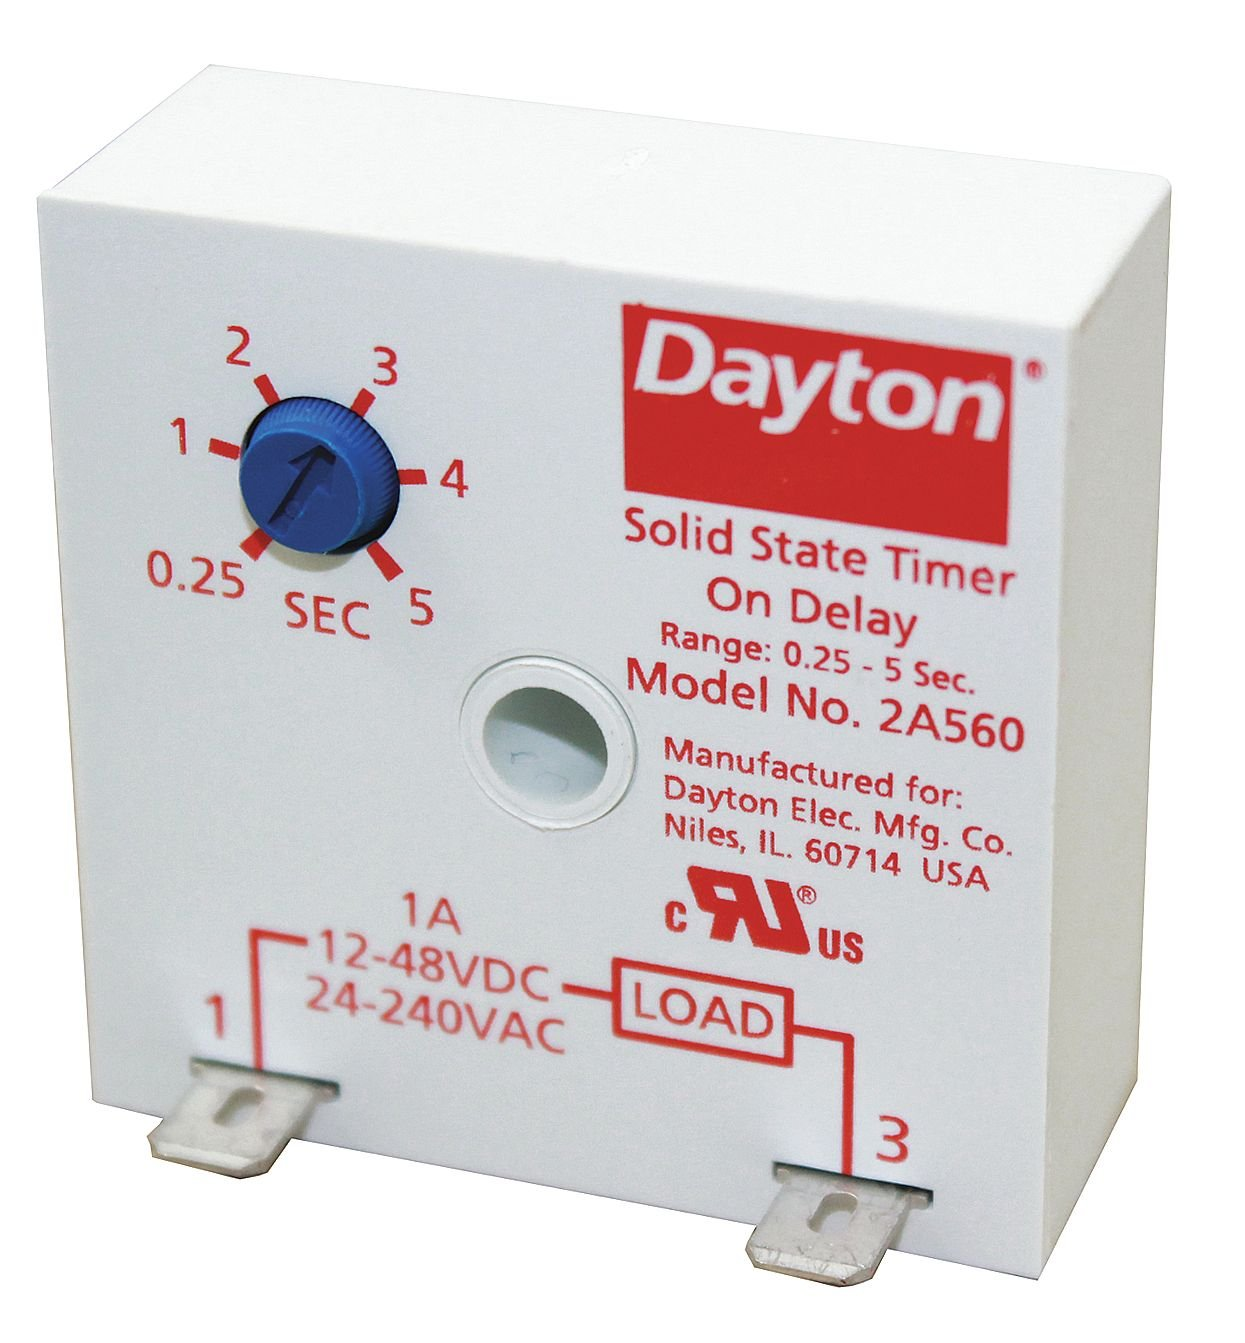 1A 2A560 Solid State Dayton Encapsulated Timer Relay